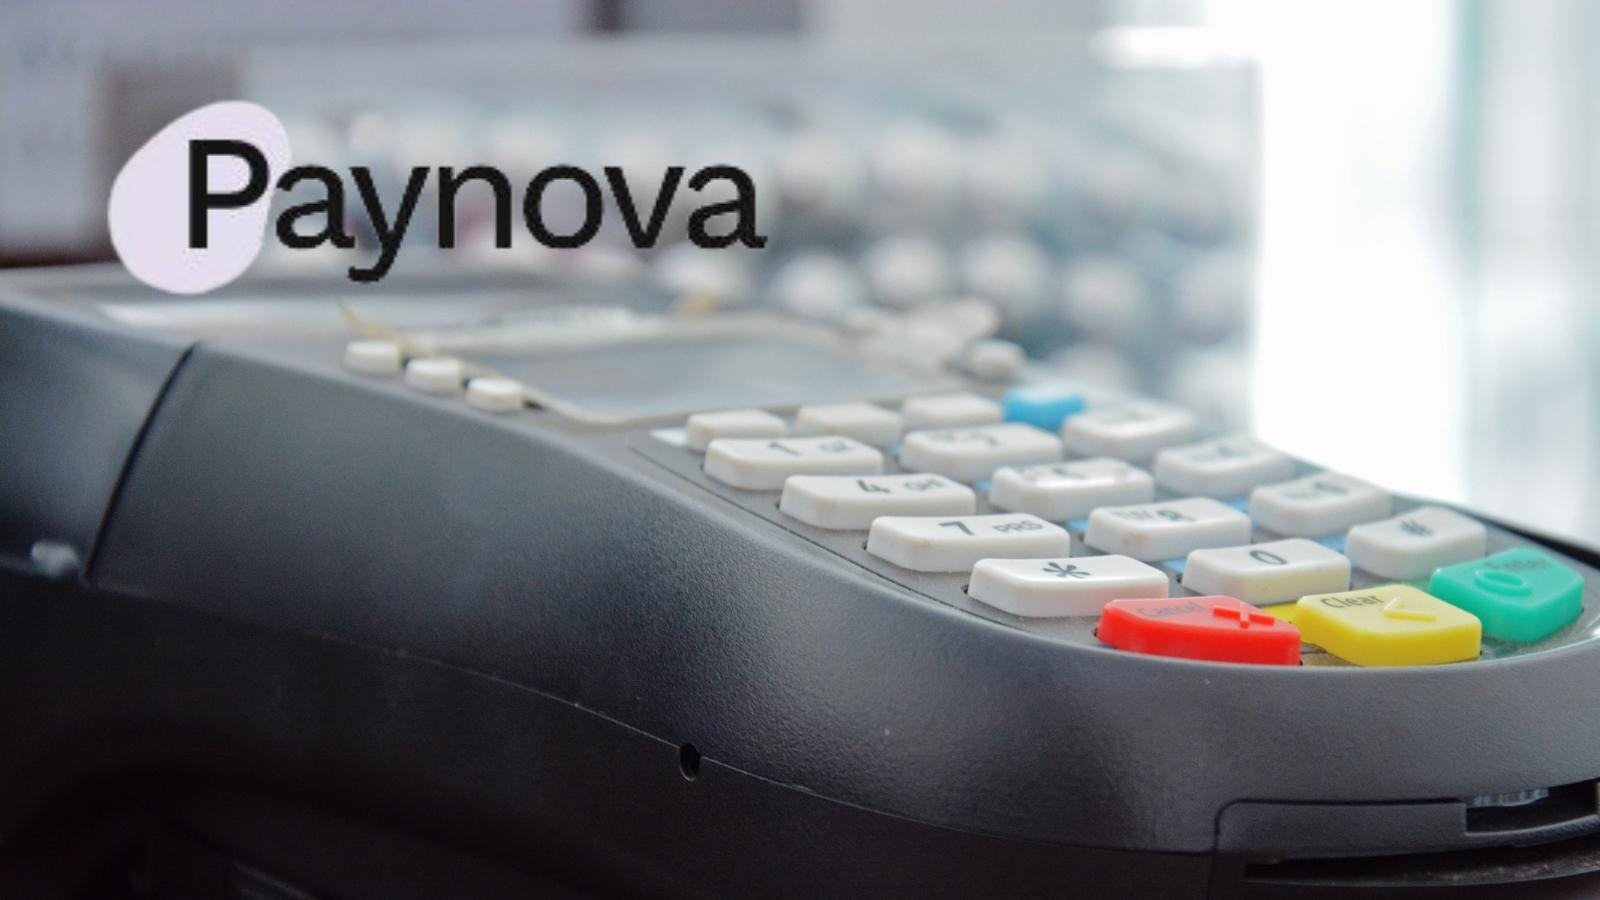 Paynova for payments